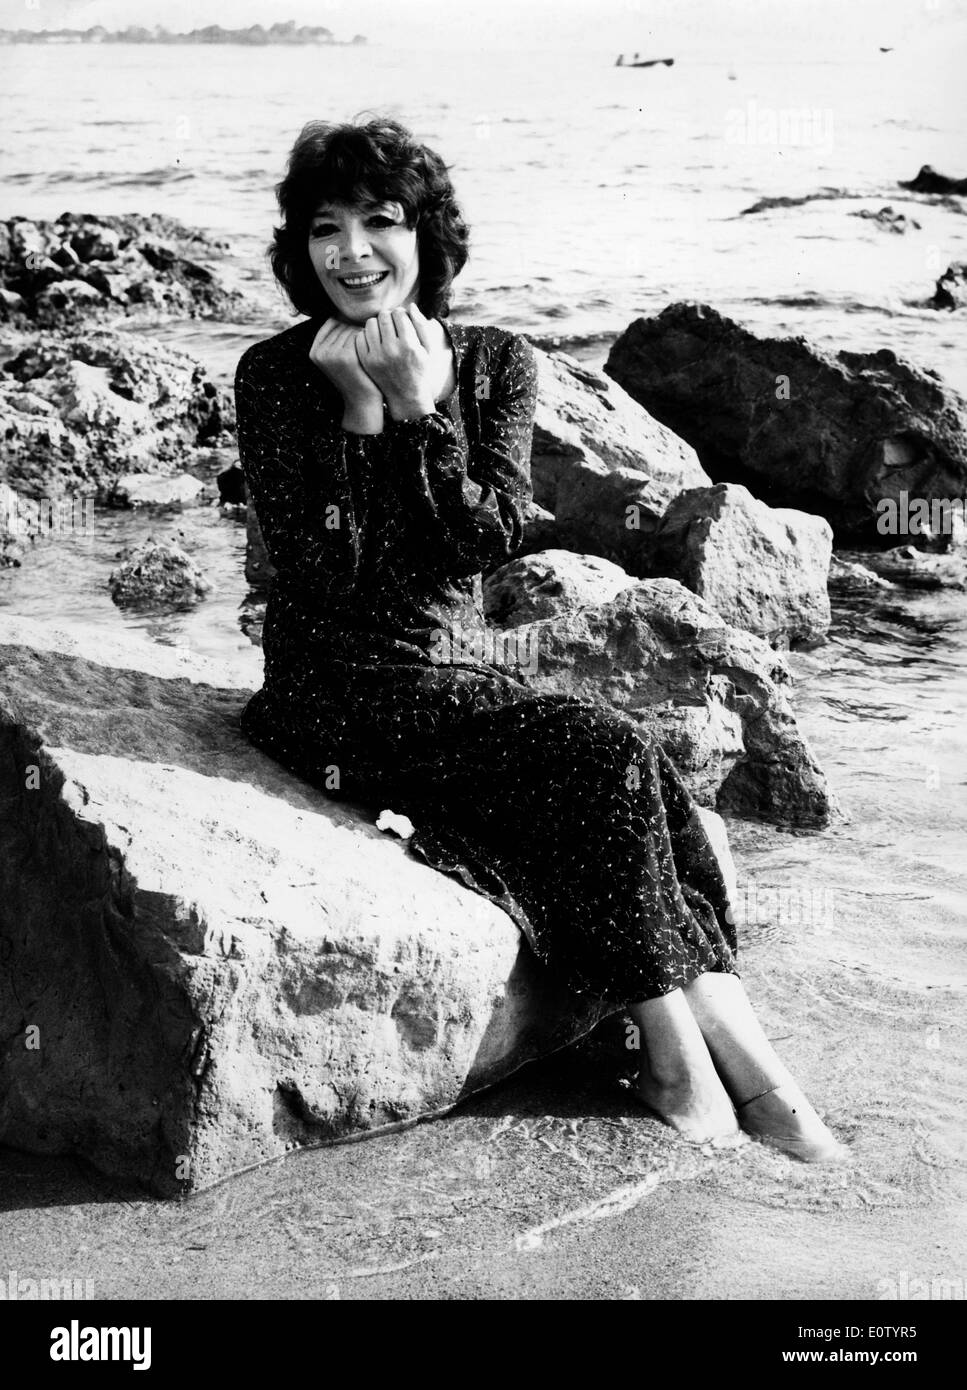 Portrait of Juliette Greco on the beach - Stock Image